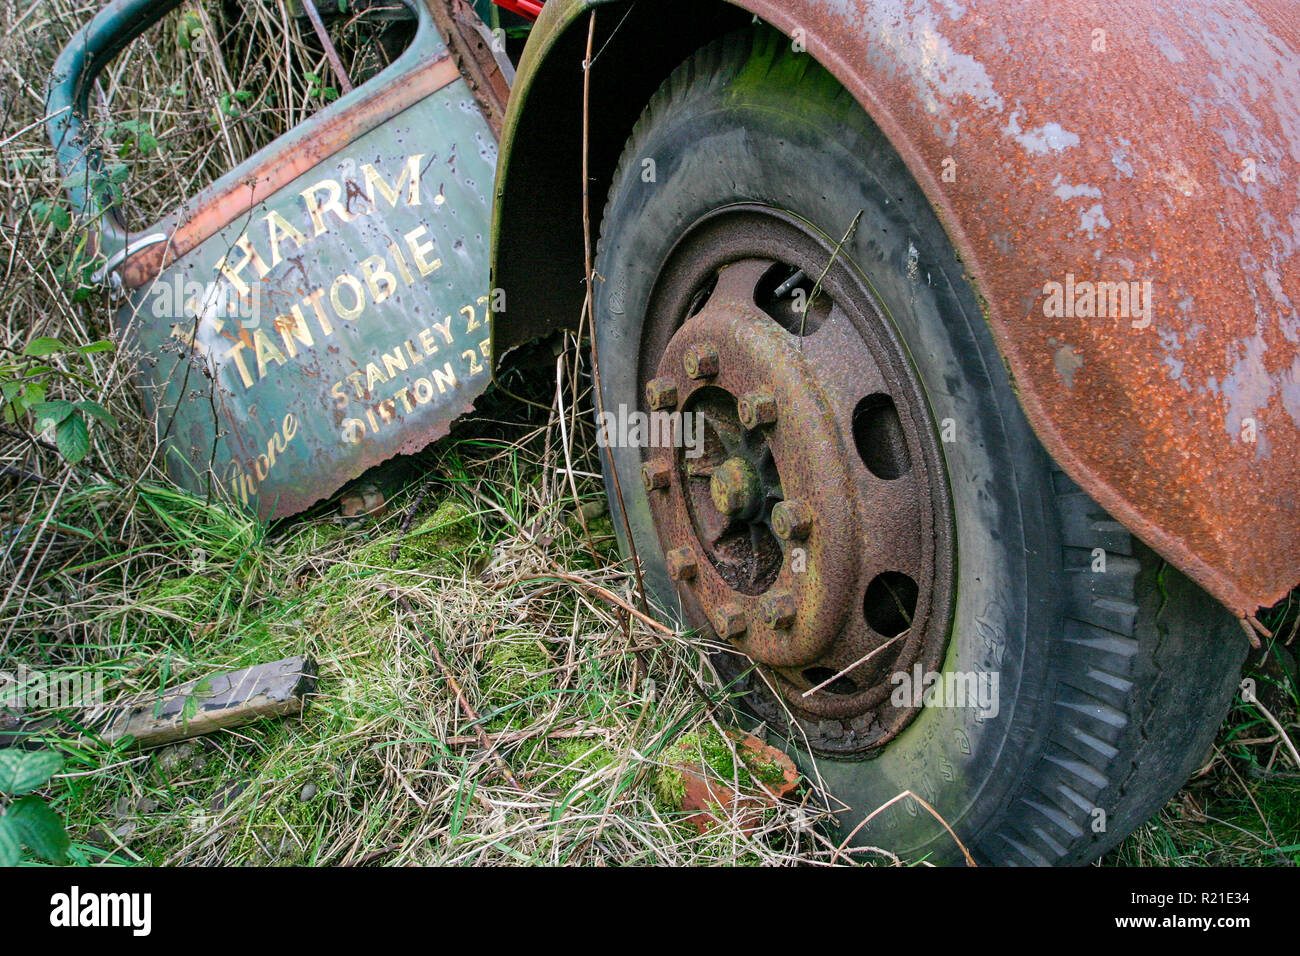 Abandoned old derelict and rusty 1940's Bedford M Series or O Series truck on waste ground surrounded by weeds and grass, County Durham UK - Stock Image